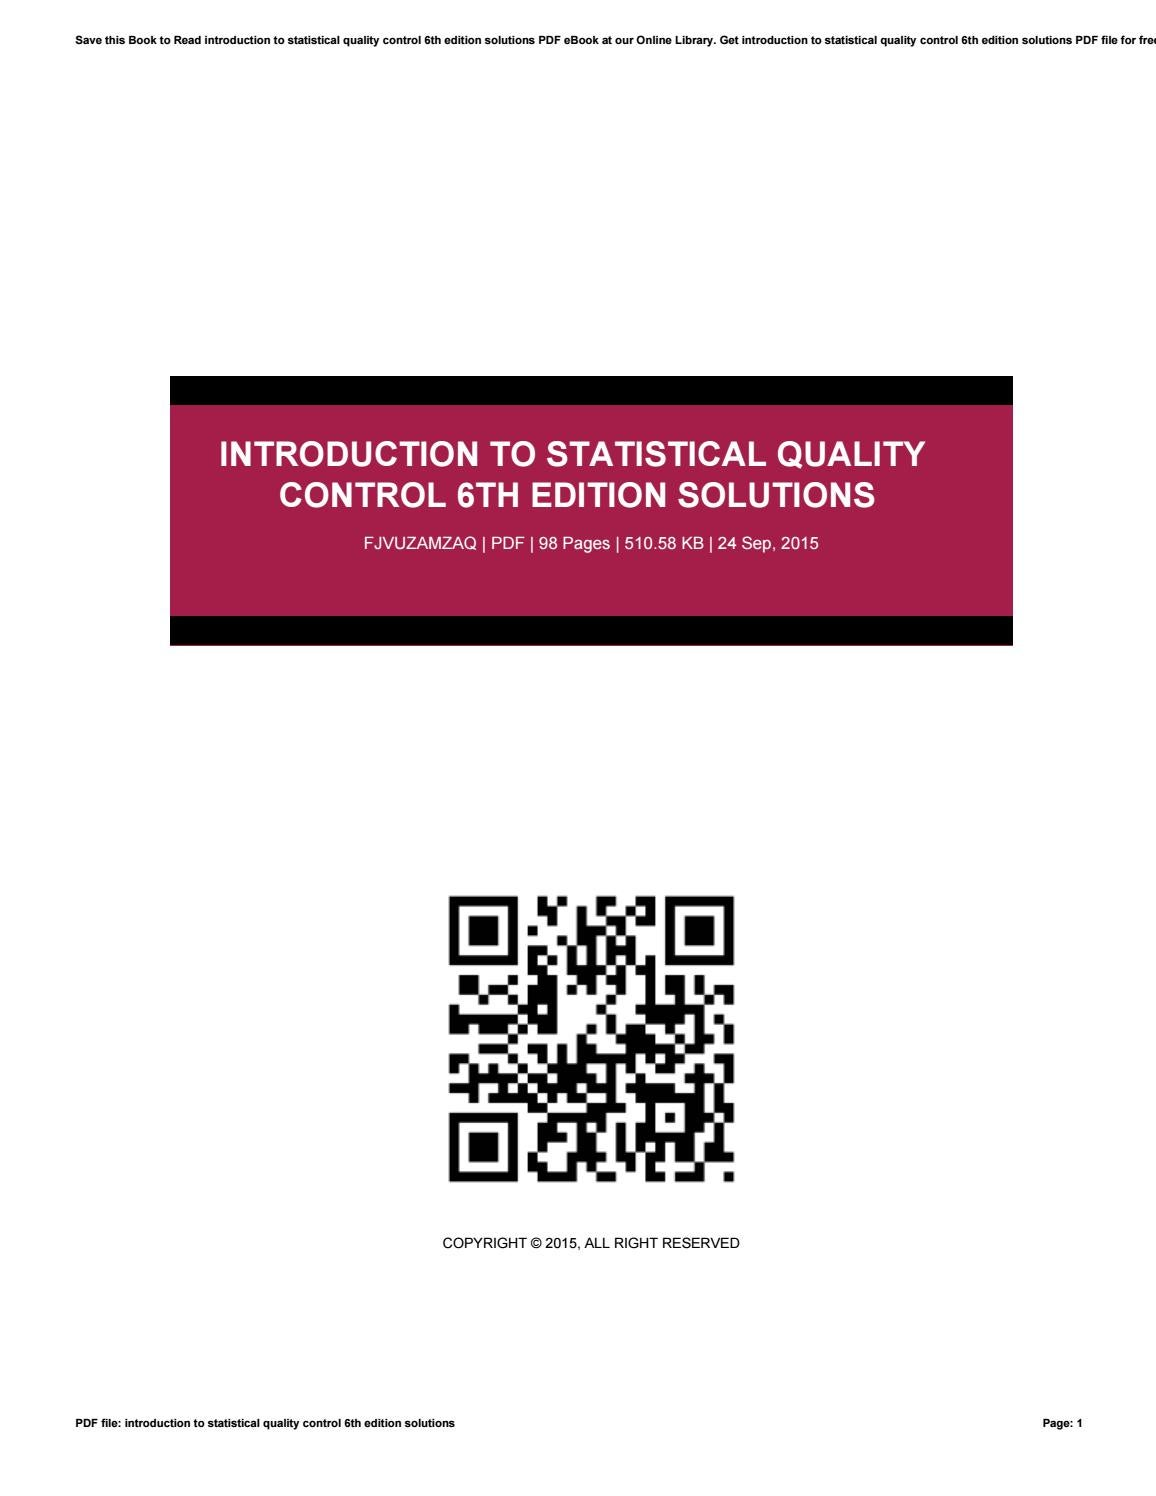 Introduction to statistical quality control 6th edition solutions by  LyndonPage2522 - issuu